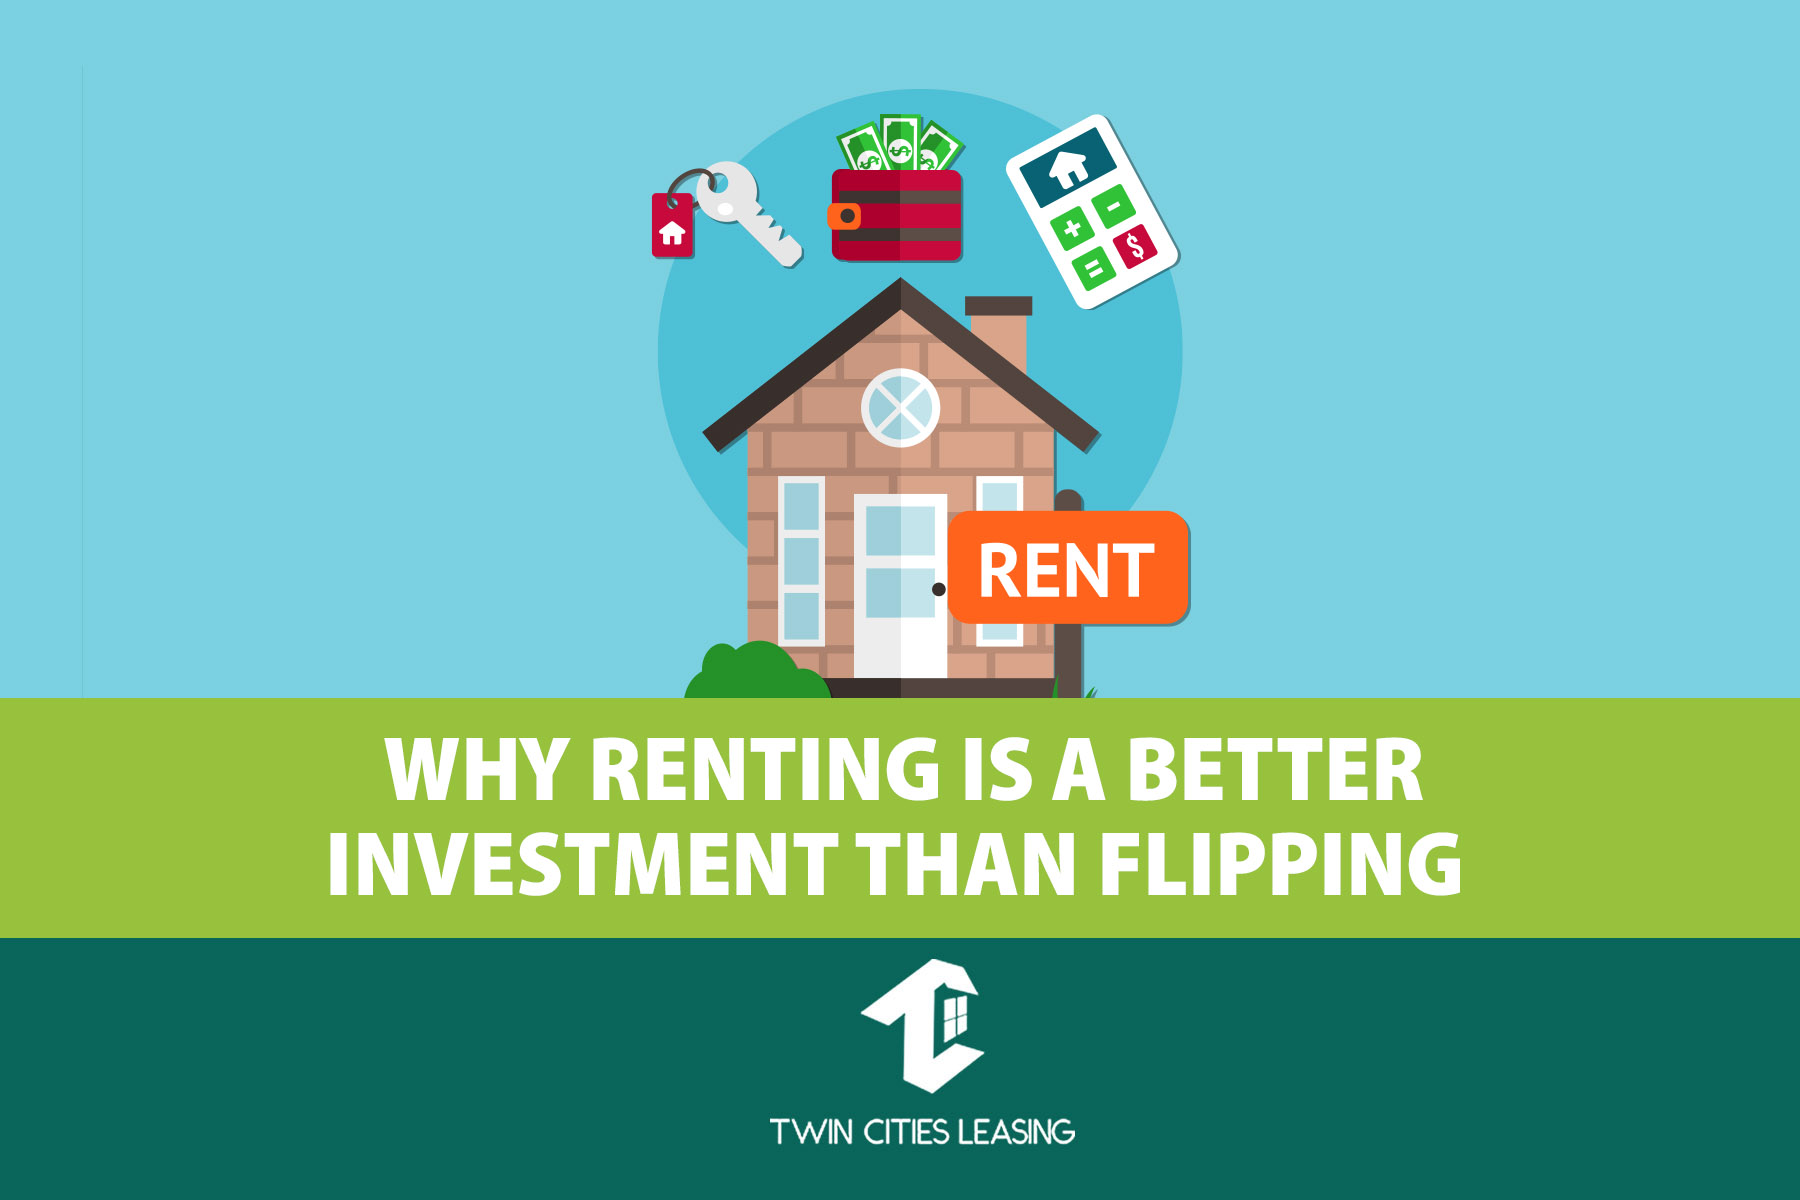 Why Renting Your Property Is a Better Investment Than Flipping It